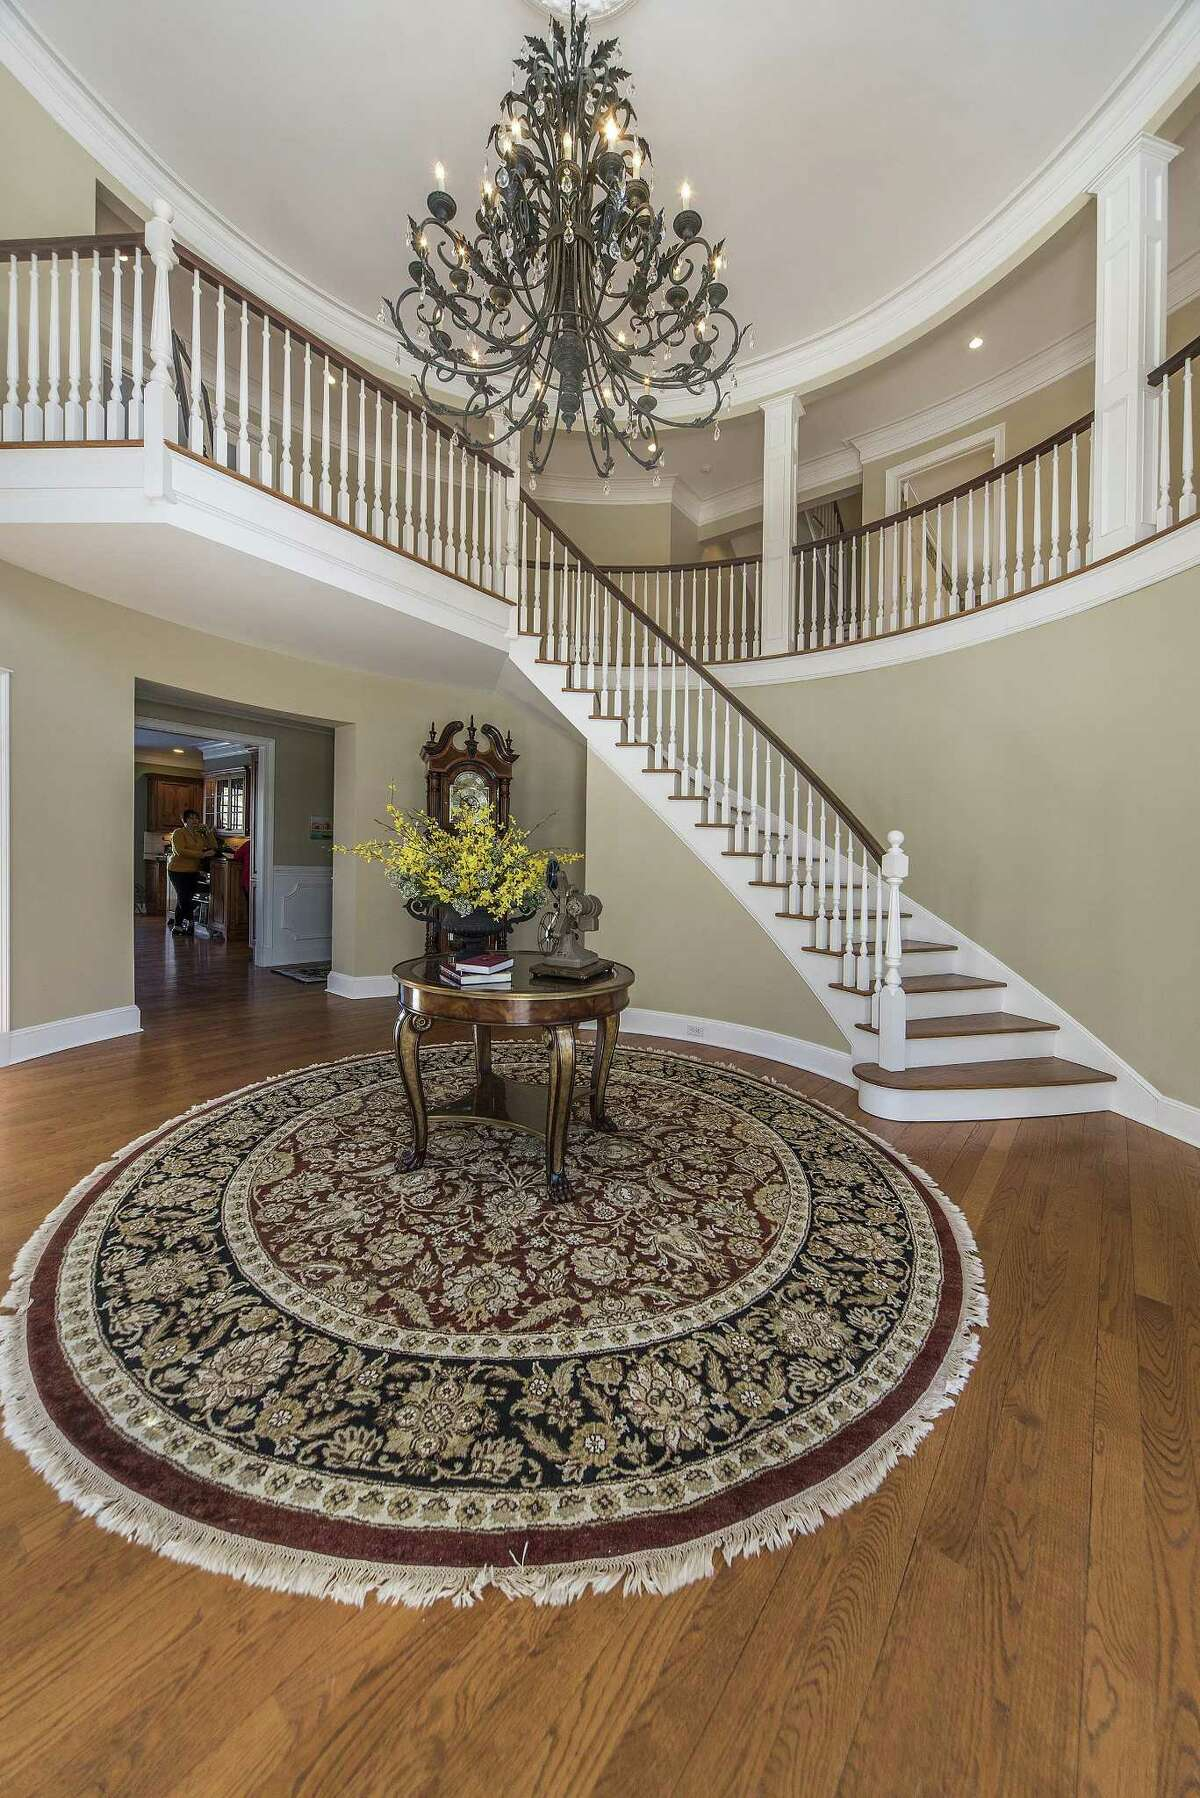 The front door opens to the two-story rounded foyer of this 7,231-square-foot house.